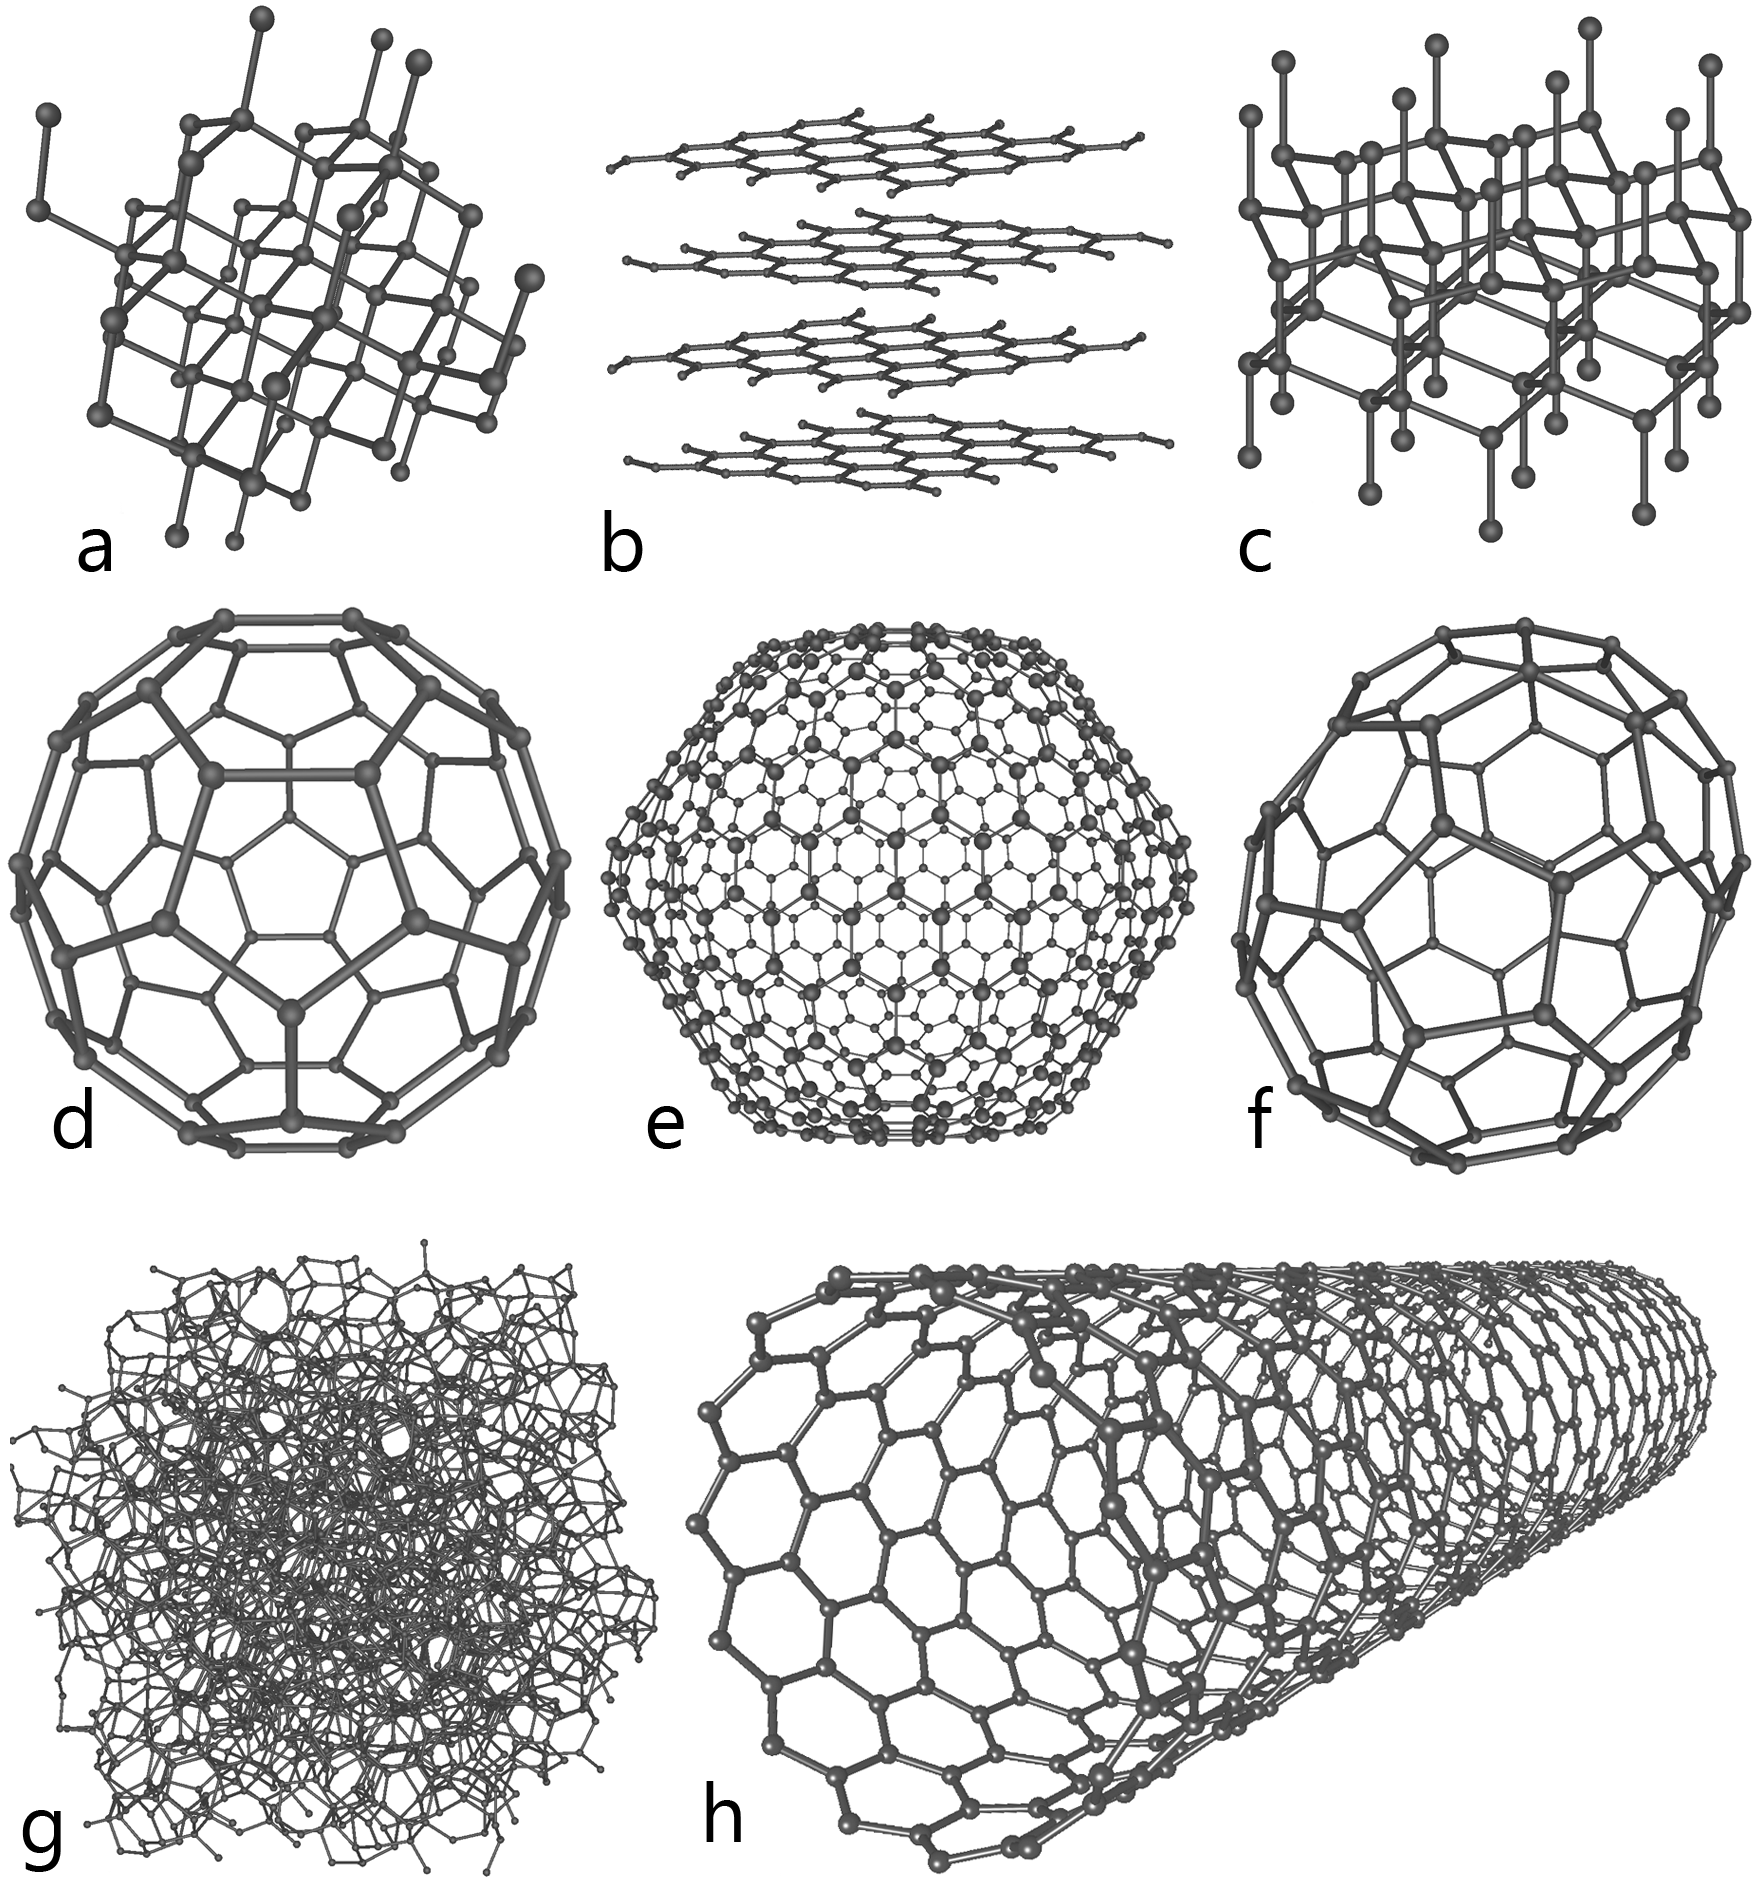 Various allotropes (structural variations) of carbon (joined with itself).  Carbon-based molecules exhibit great variety ... even when limited to only carbon! Image: Created by Michael Ströck, available at http://en.wikipedia.org/wiki/Allotropes_of_carbon